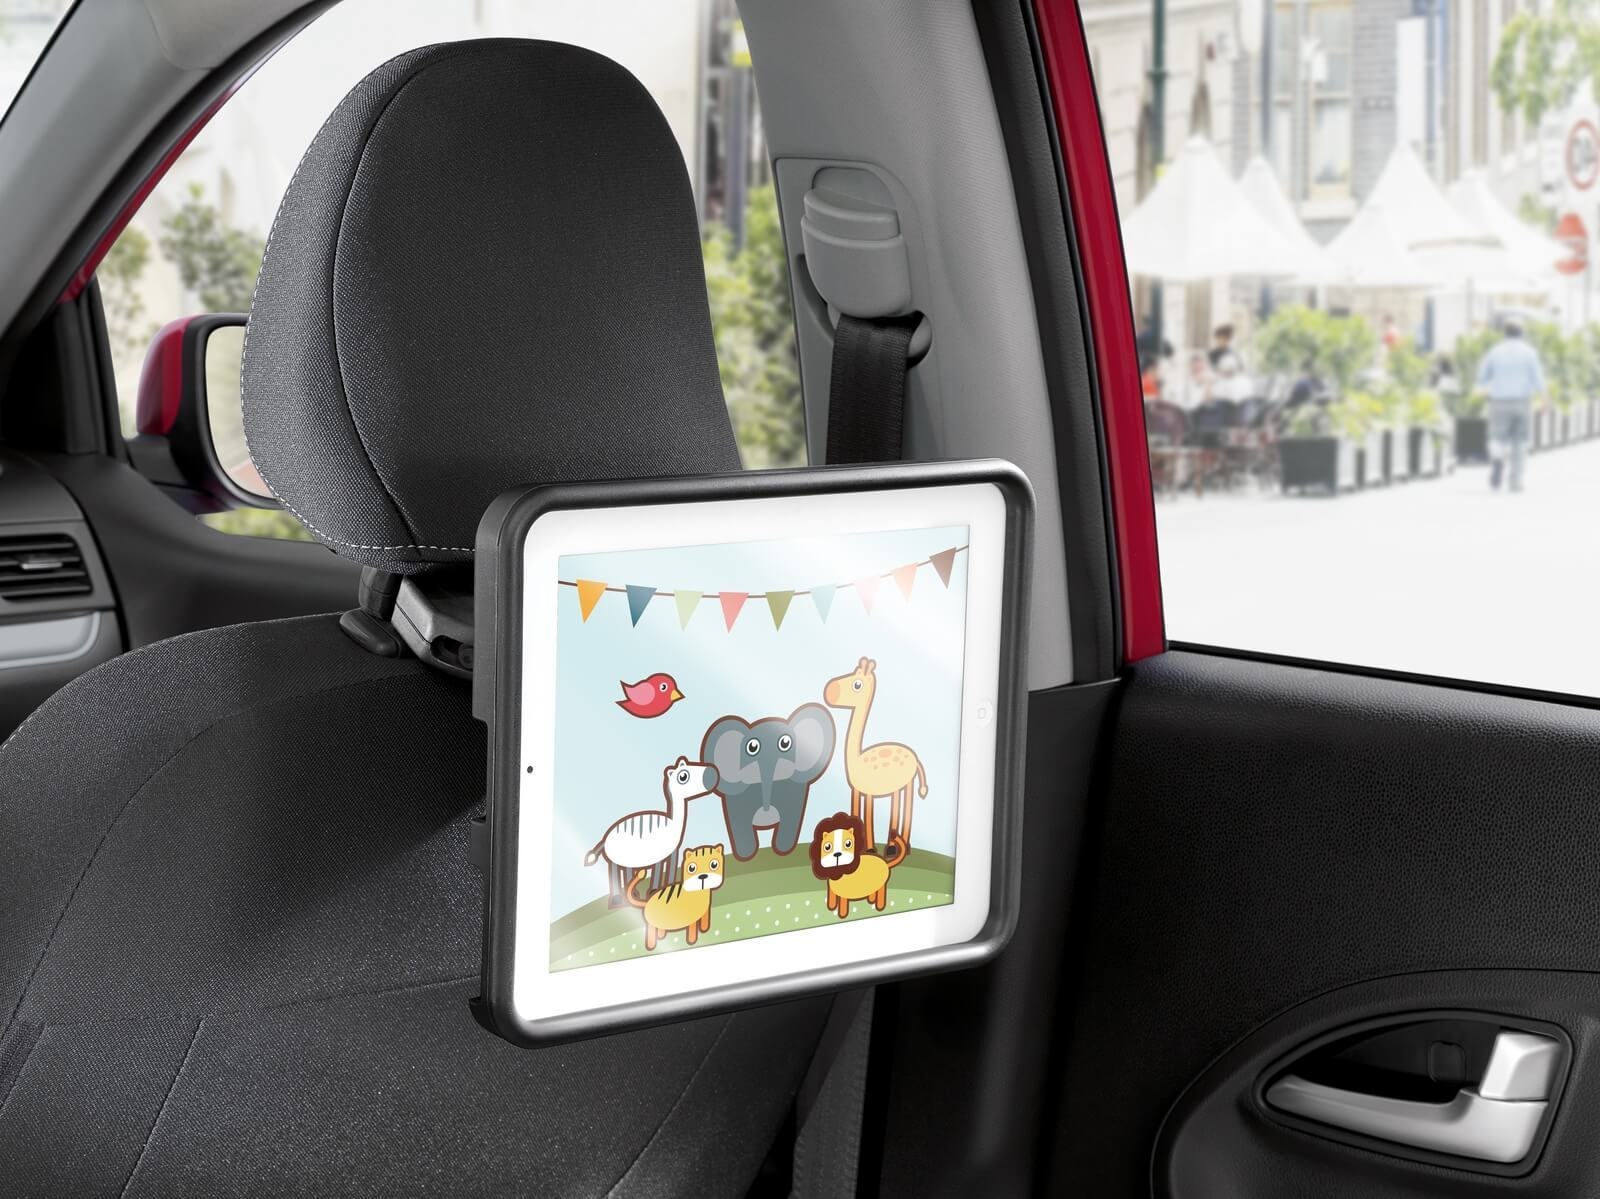 Крепление для Ipad для 2-го ряда KIA 66582ADE01 для KIA Ceed 2018 - 2019 360 degree car back seat headrest mount holder for ipad mini 1 2 3 4 air galaxy tablet r179t drop shipping